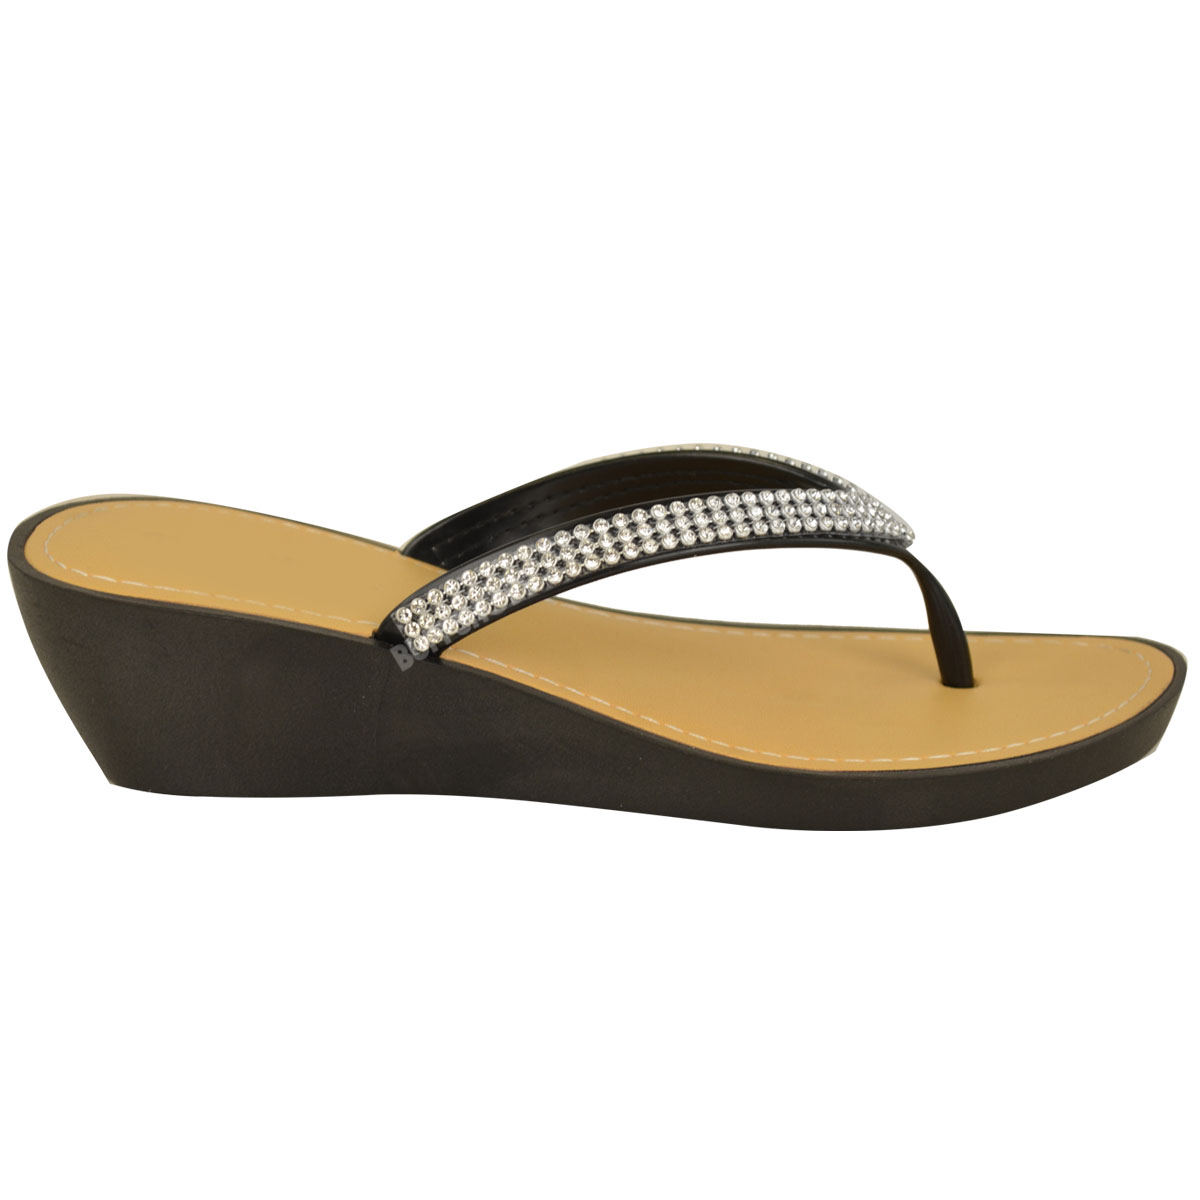 NEW-JELLY-SANDALS-WOMENS-LADIES-DIAMANTE-SUMMER-HOLIDAY-COMFORTS-FLIP-FLOPS-SIZE thumbnail 4